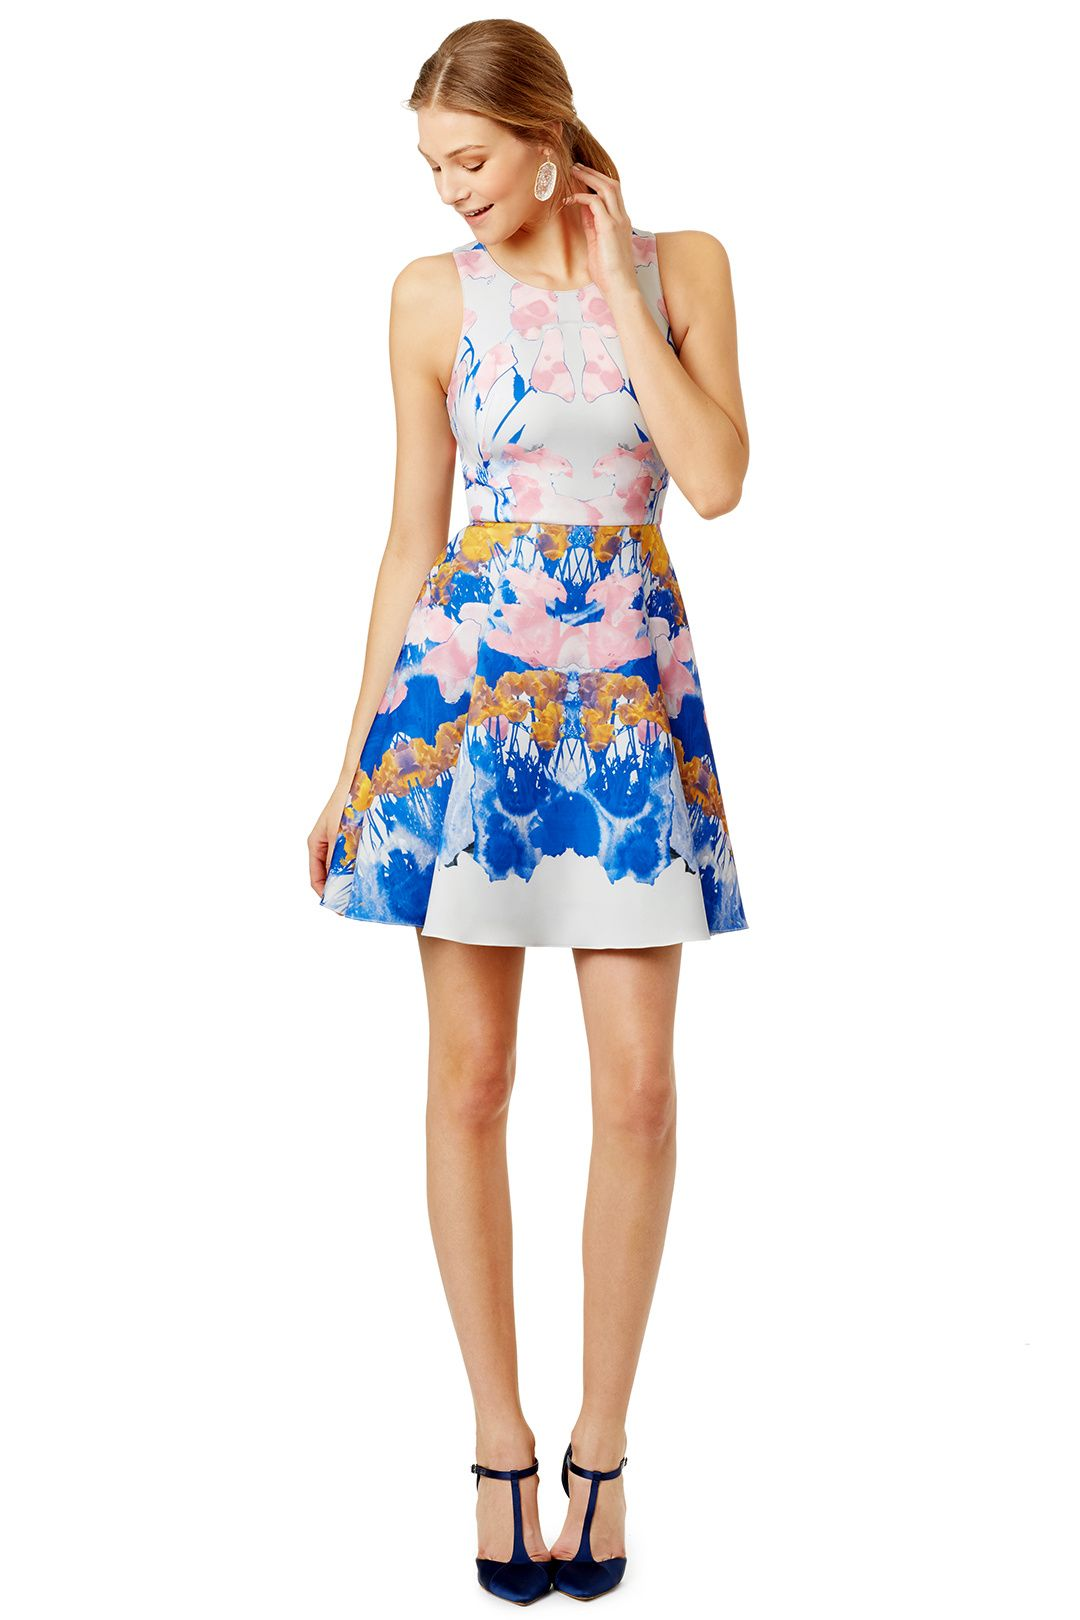 Watercolor Dive Dress By Hunter Bell For 60 Rent The Runway - Rent Dress For Wedding Guest